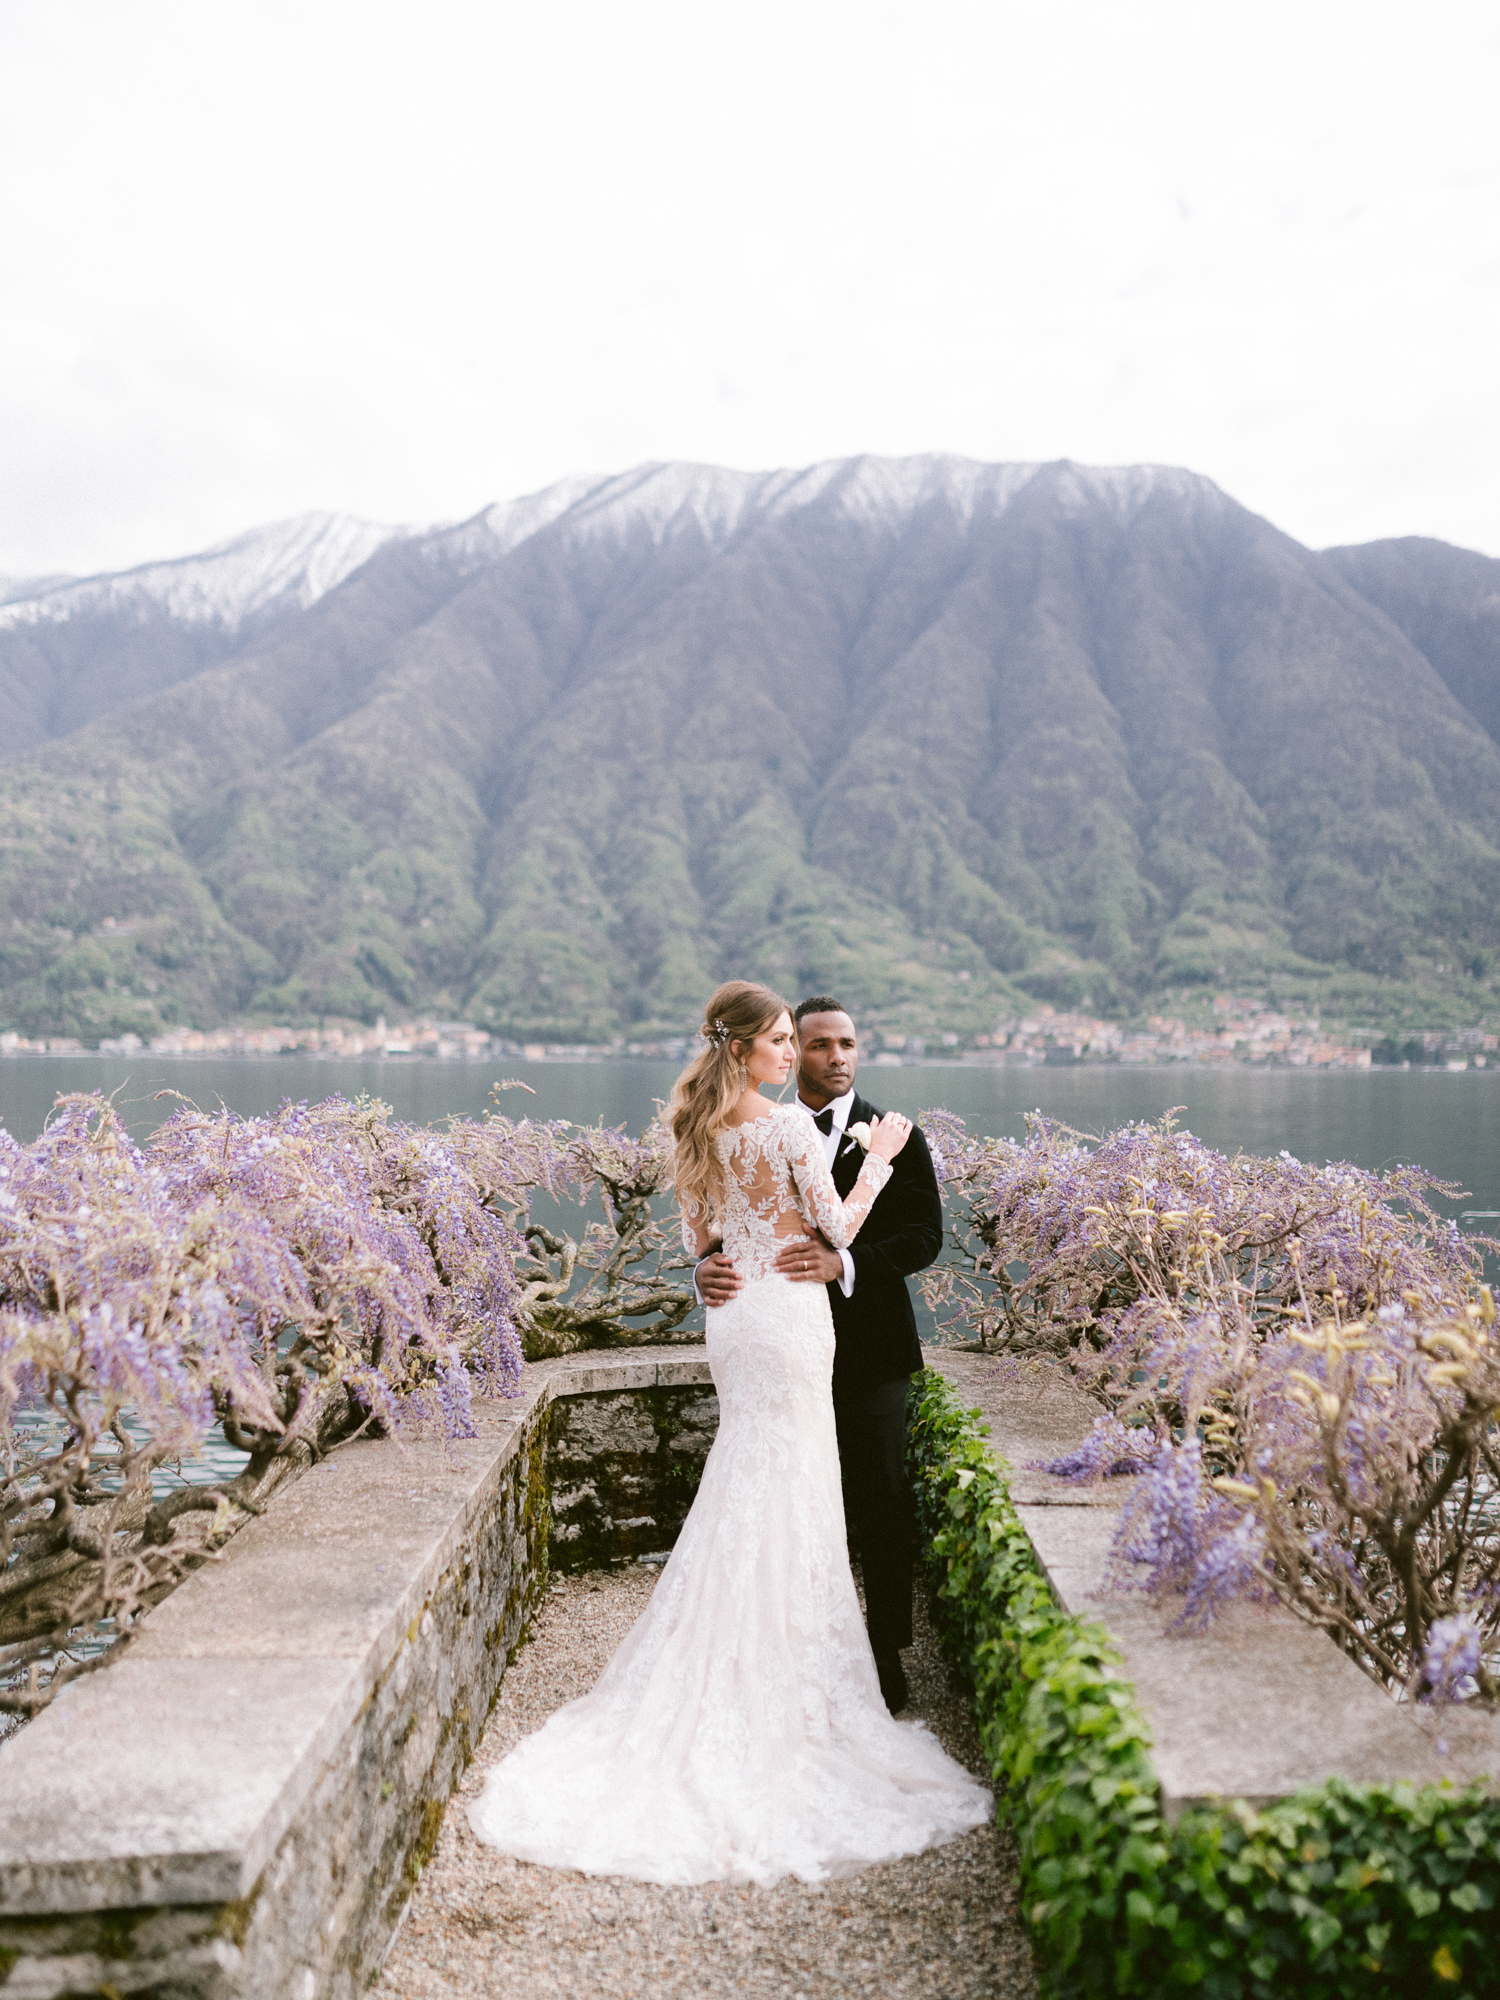 Couple surrounded by wisteria at lakefront - photo by Gianluca Adoviaso Photography